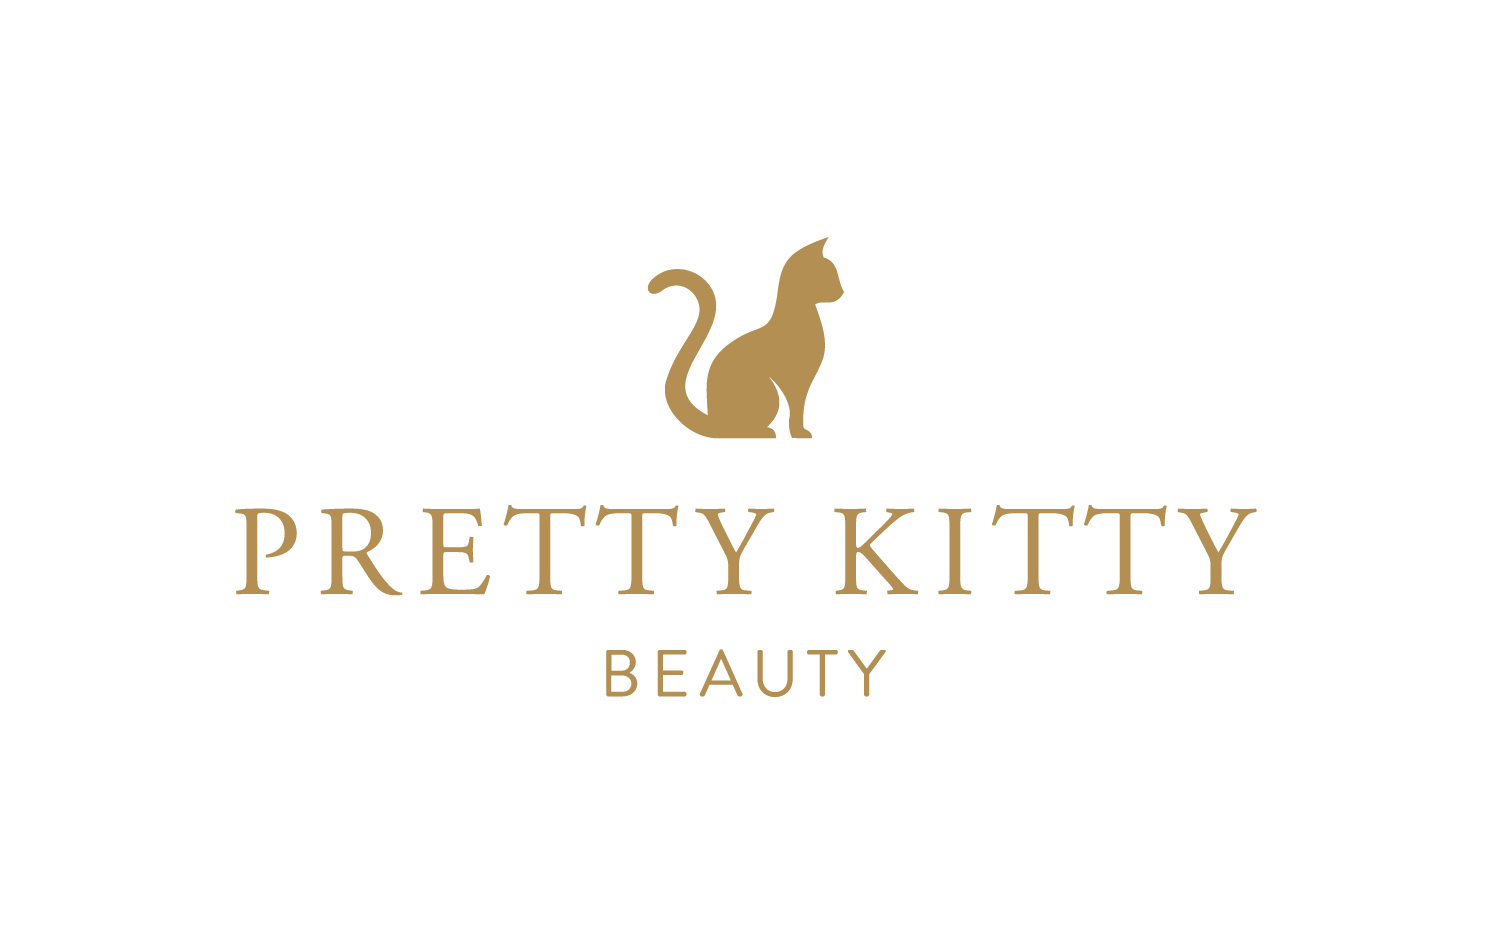 Image Pretty Kitty Beauty